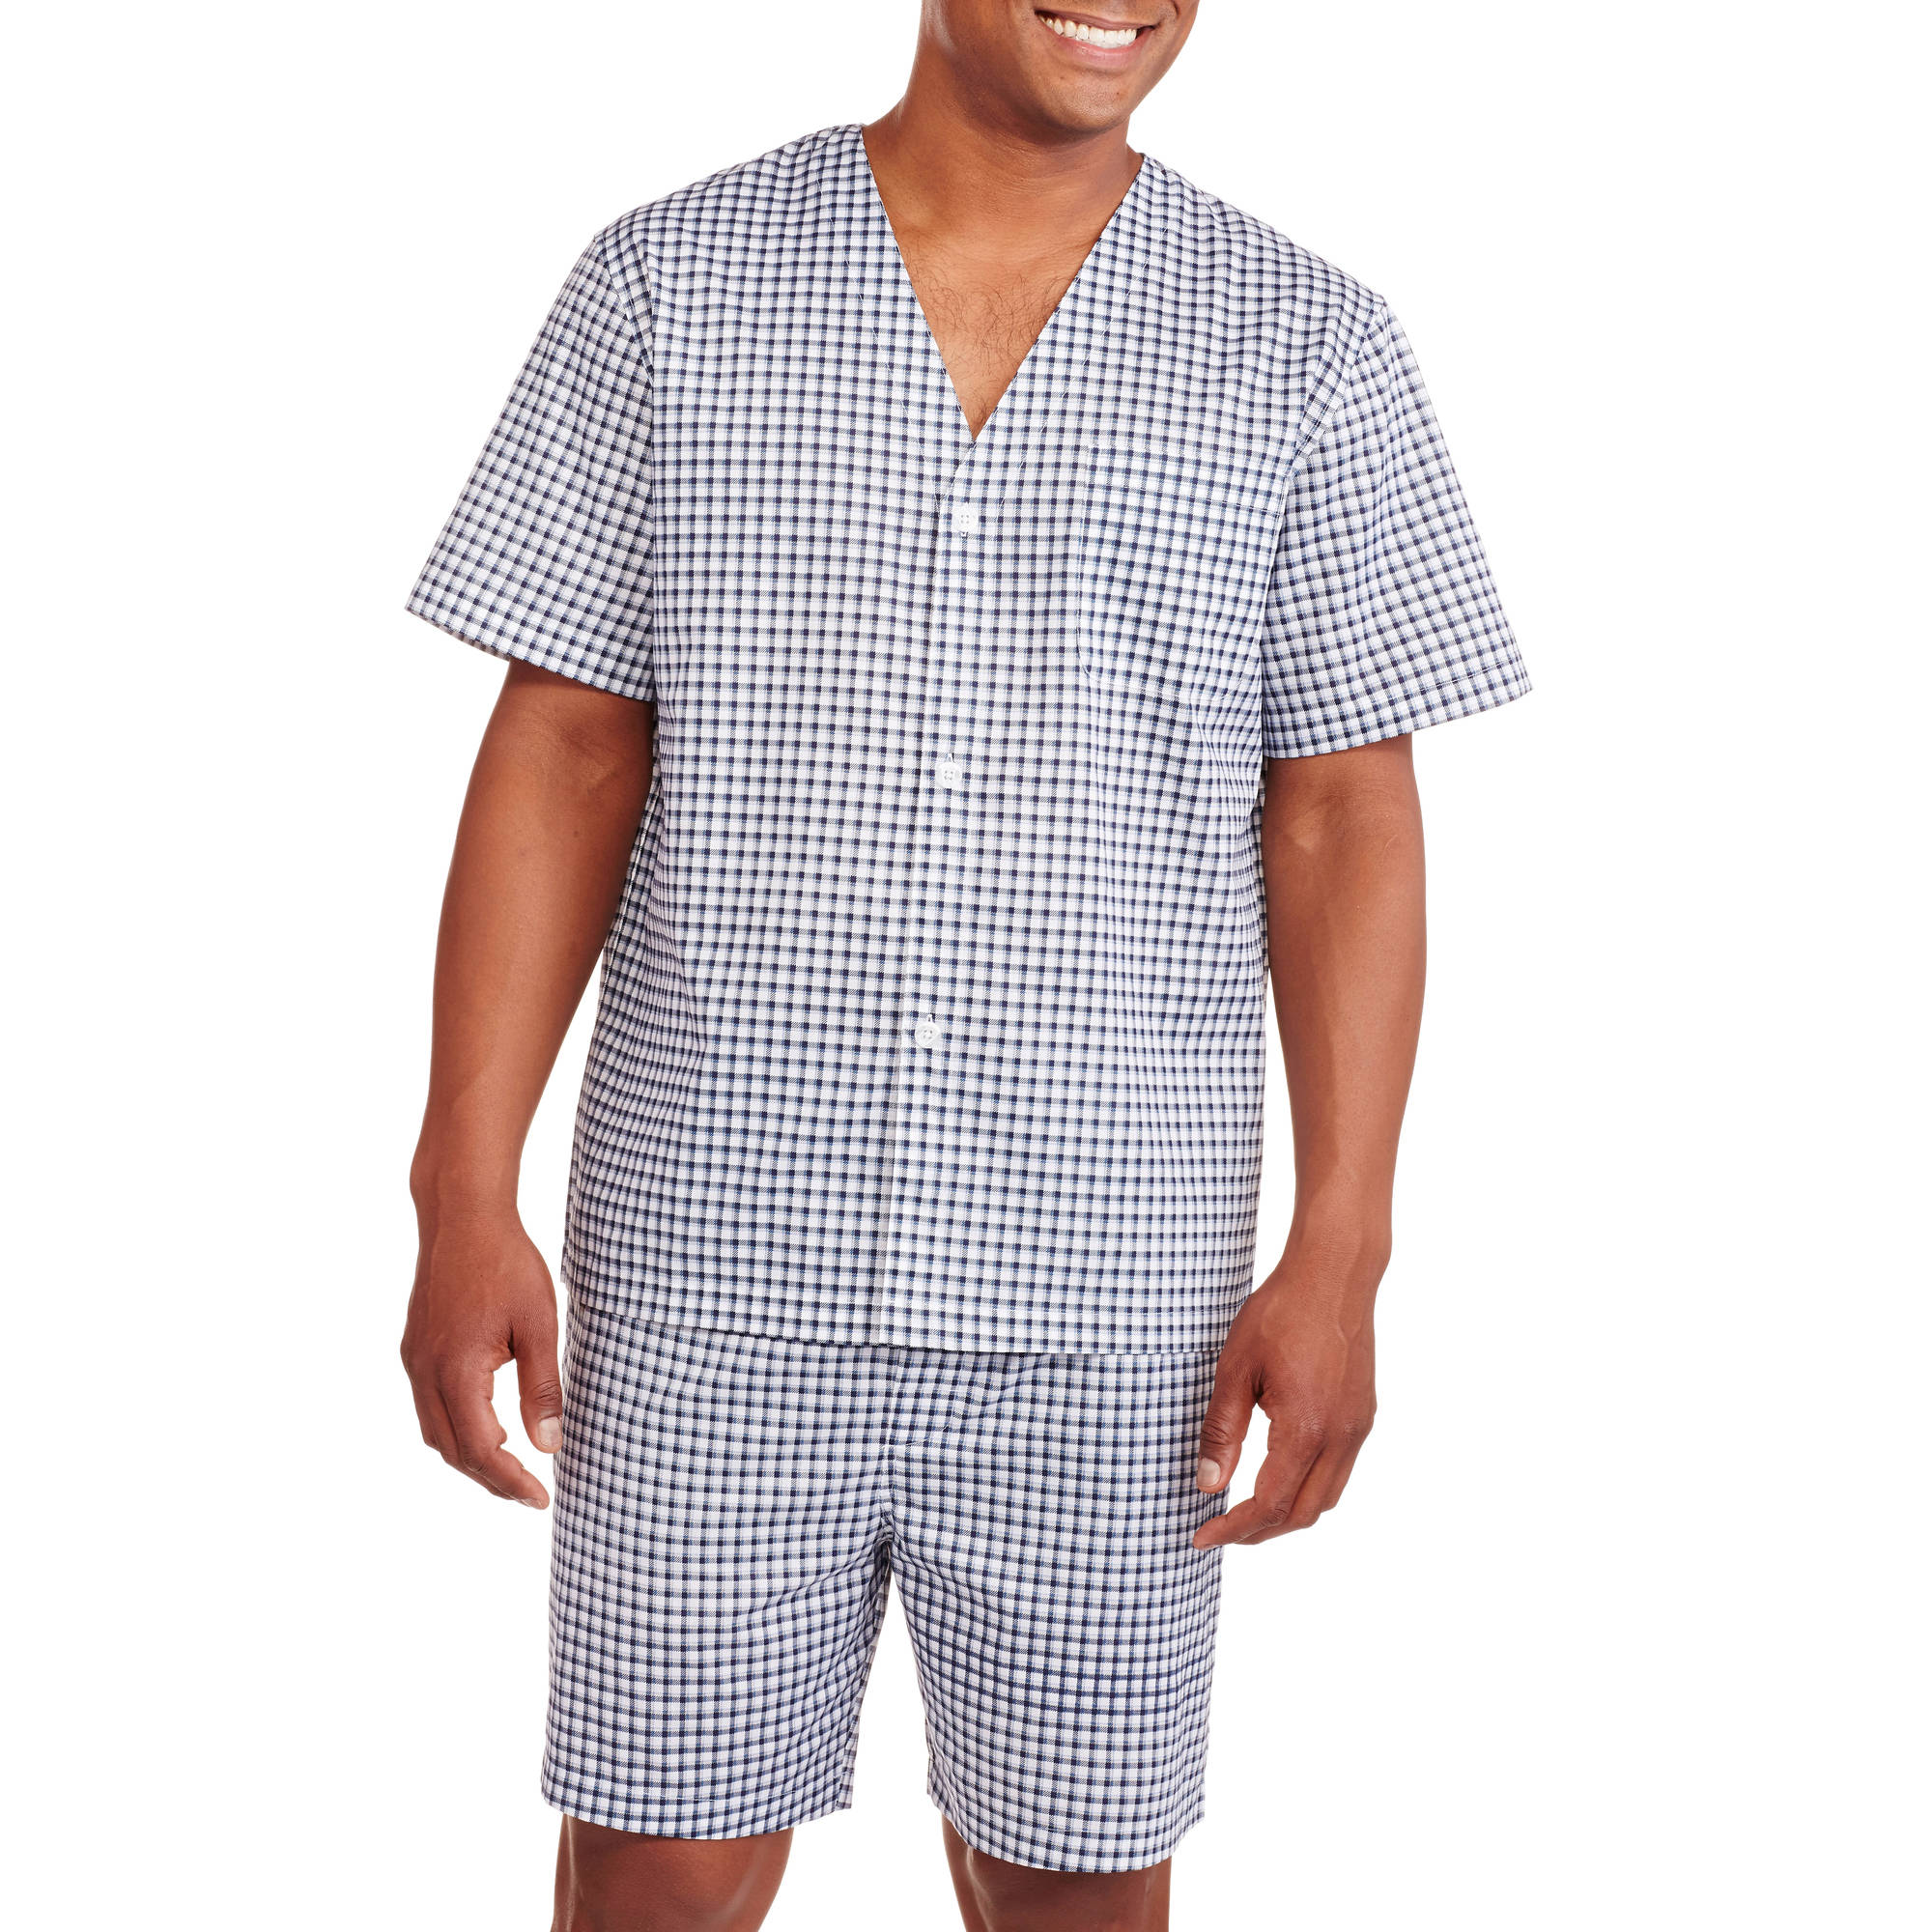 Fruit of the Loom Men's Short Sleeve Knee Length Pant Print Pajama